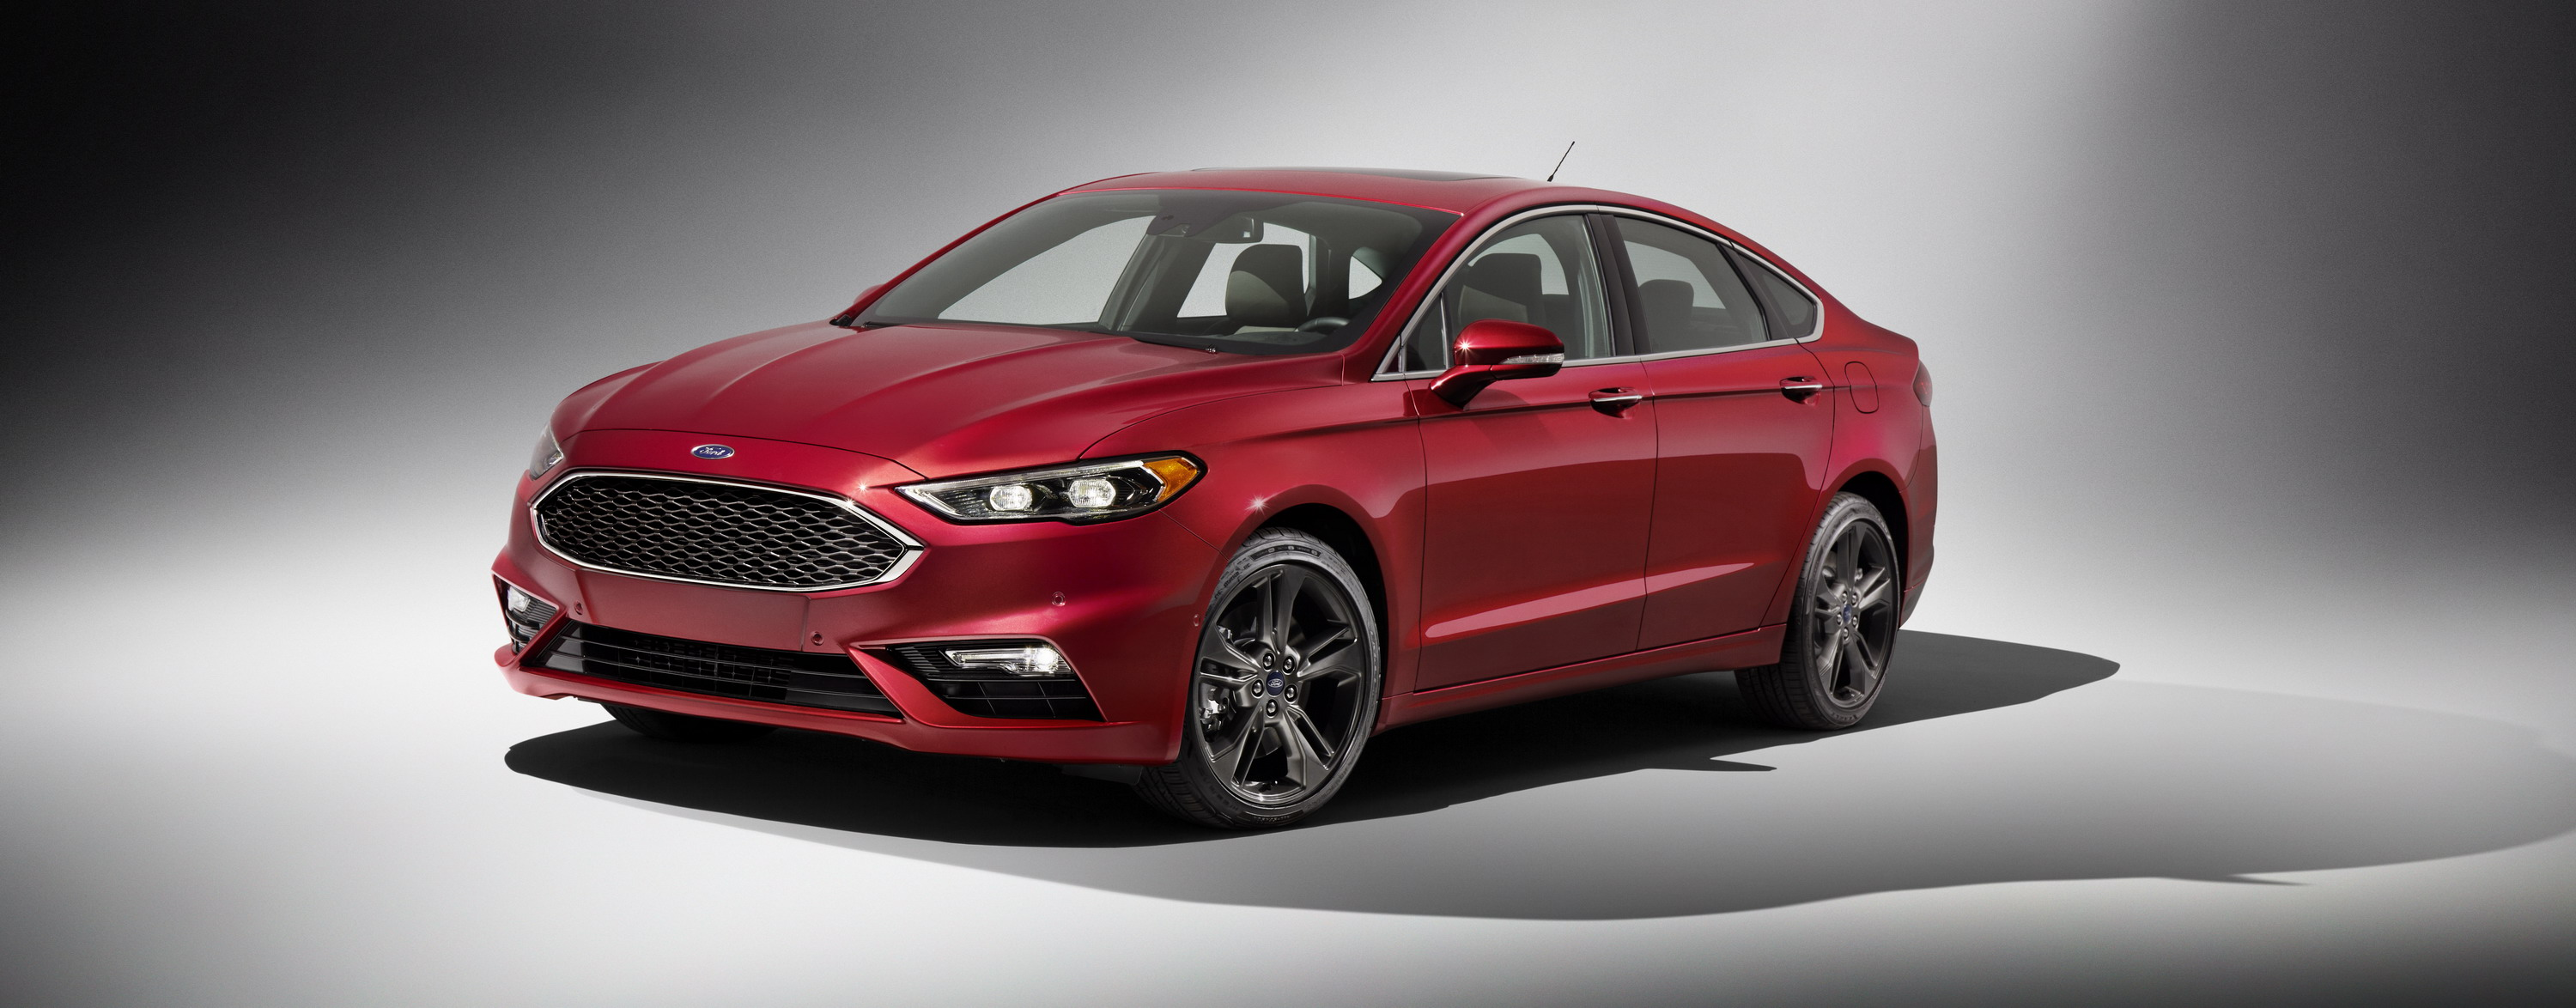 2017 ford fusion review top speed. Black Bedroom Furniture Sets. Home Design Ideas